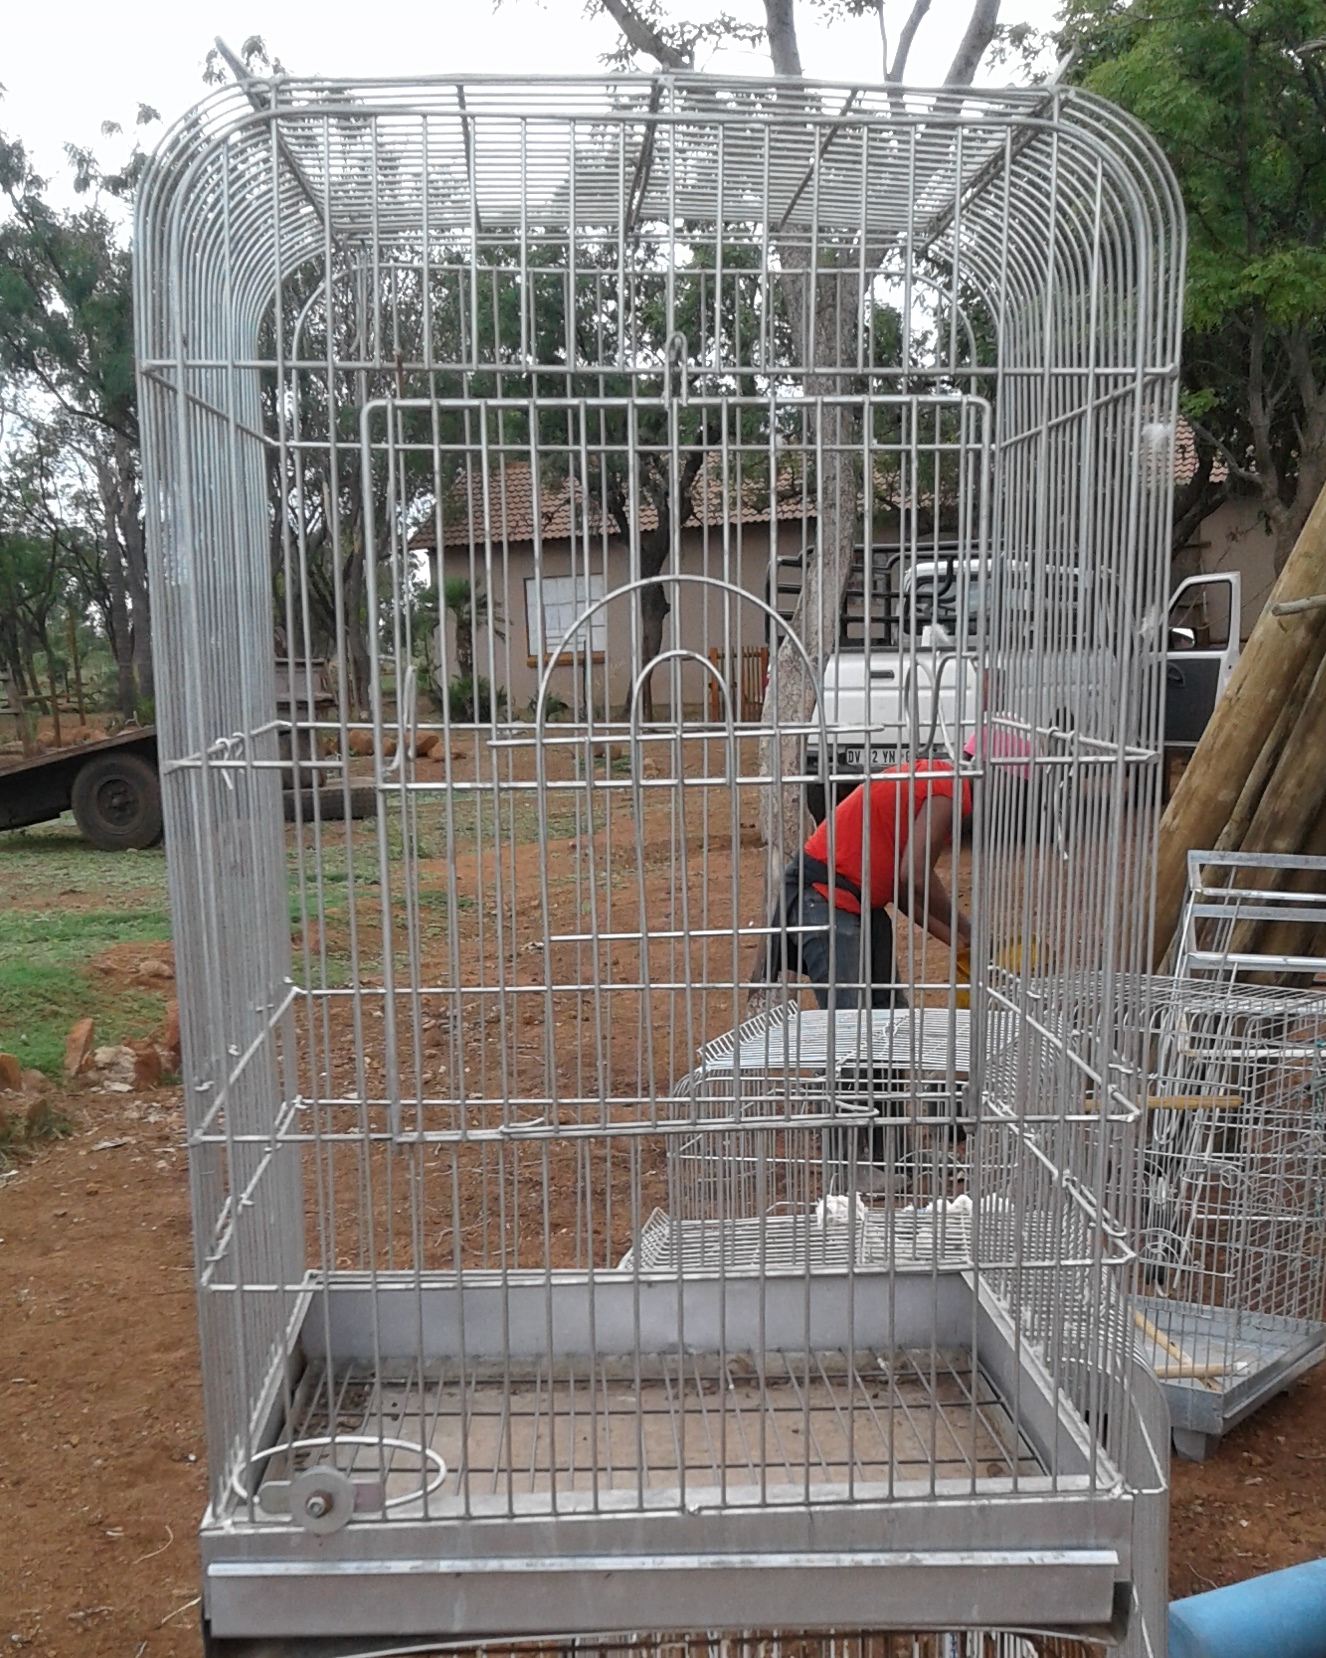 cages for parrots ans birds